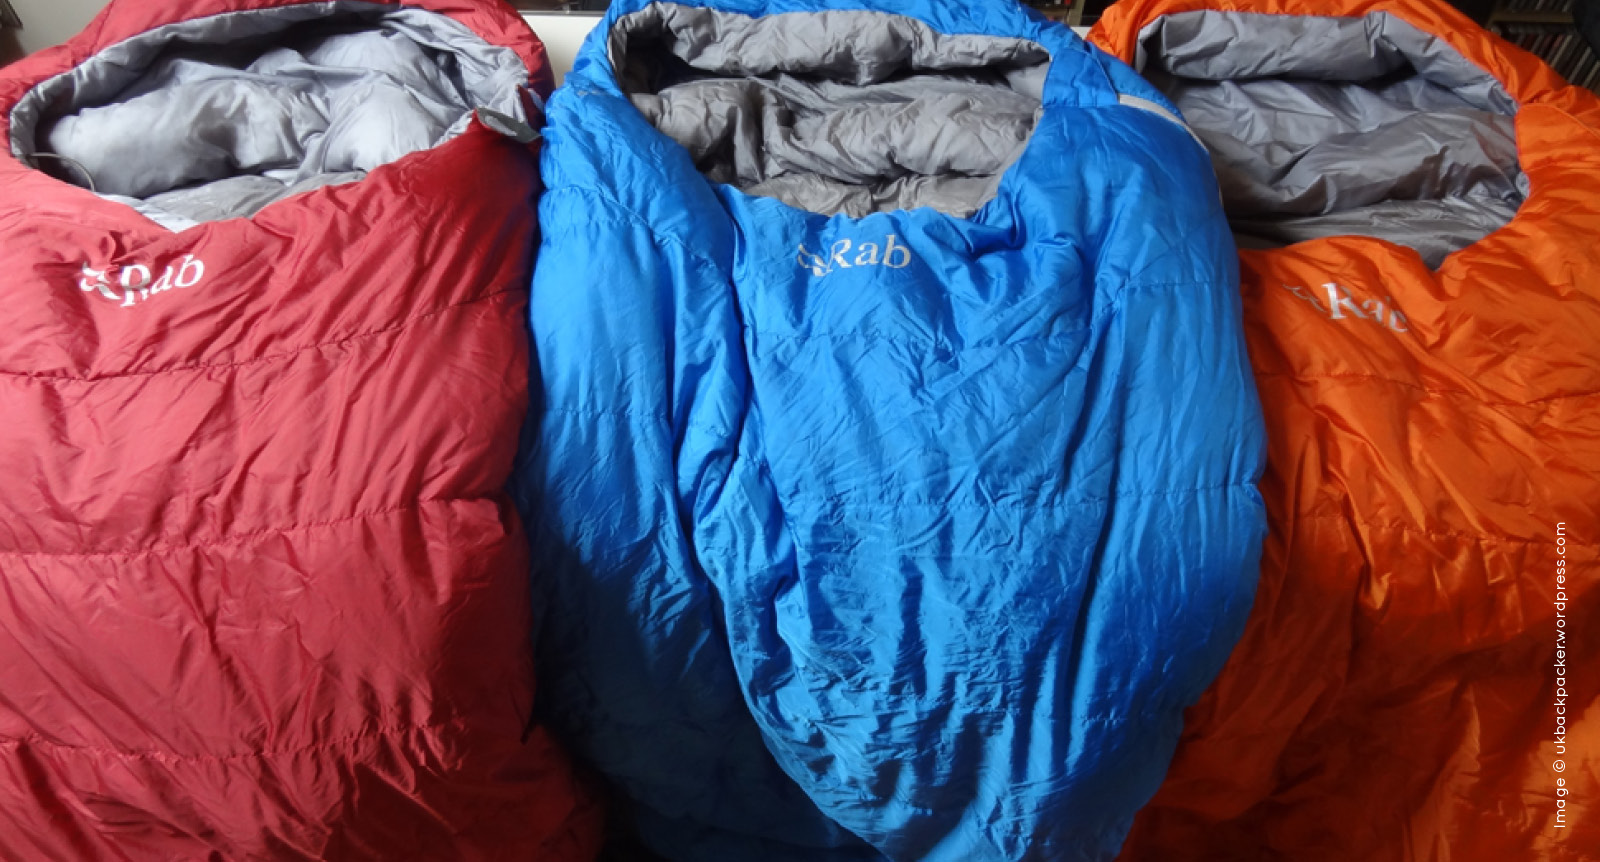 Rab sleeping bag image Image © ukbackpacker.wordpress.com